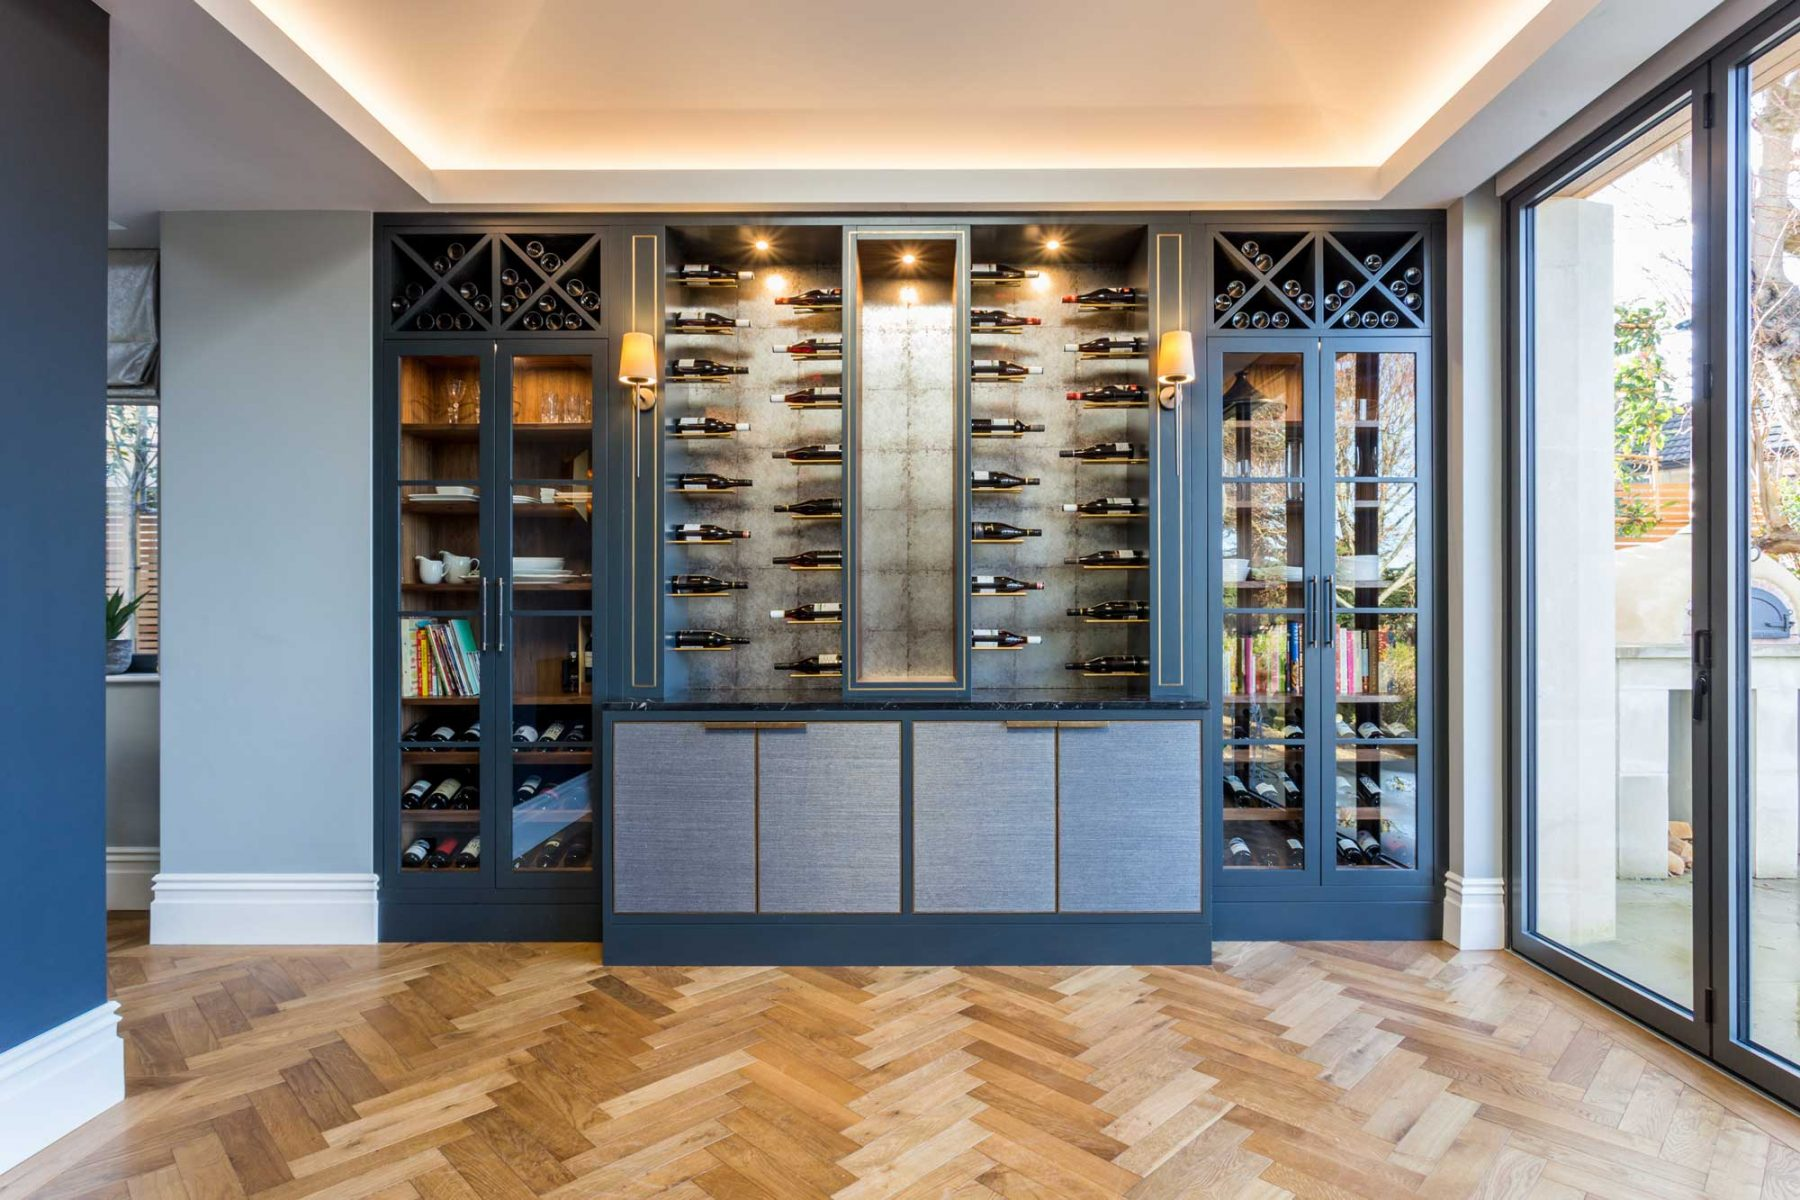 Custom-made wine wall designed by Mia Marquez